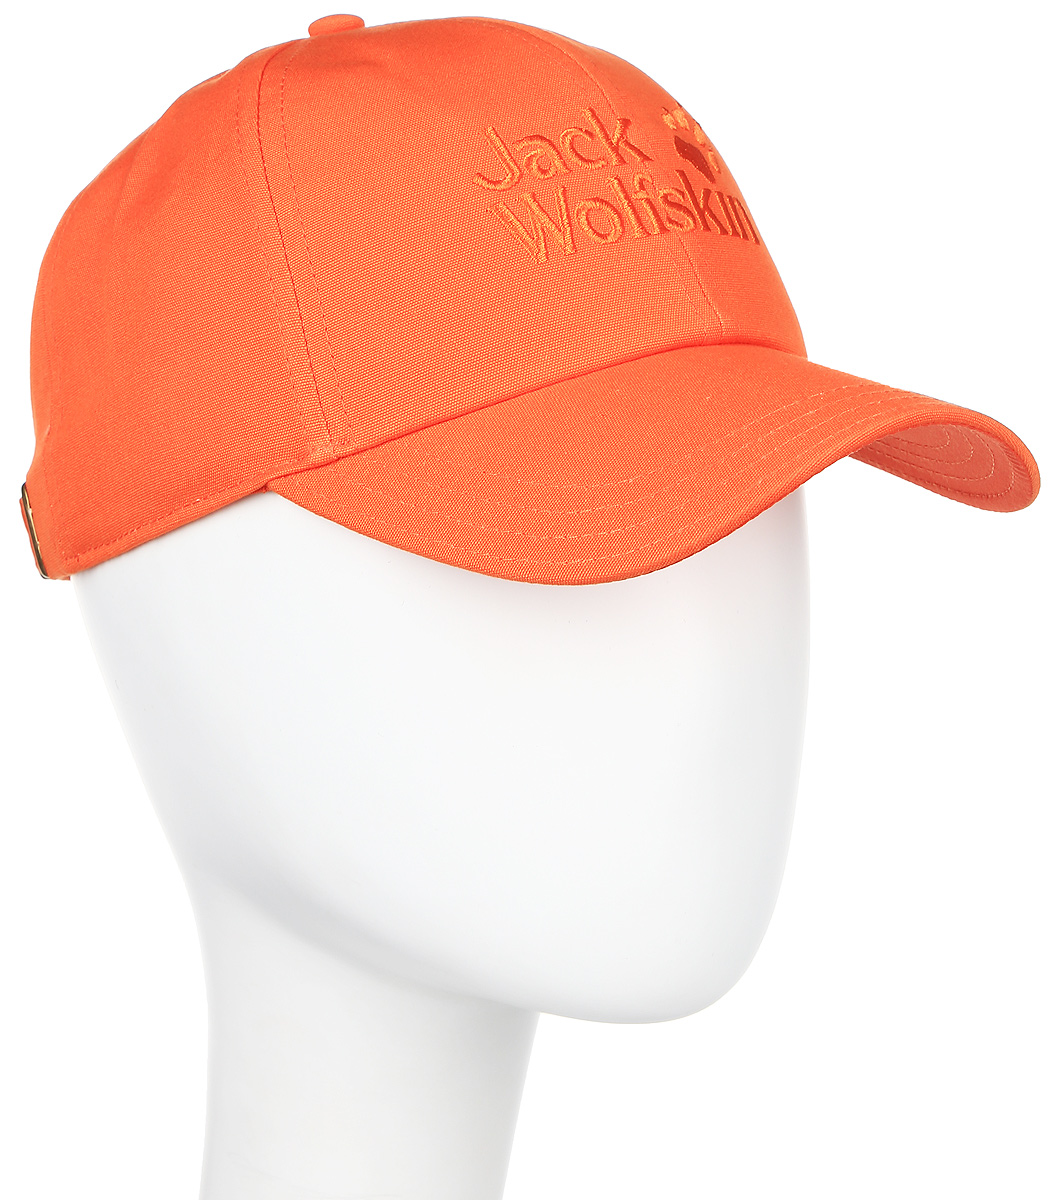 Бейсболка Jack Wolfskin Baseball Cap, цвет: оранжевый. 1900671-3727. Размер 56/61 new brand unisex breathable baseball cap run sport breathable sun hat outdoor leisure fishing man visor 10pcs lots